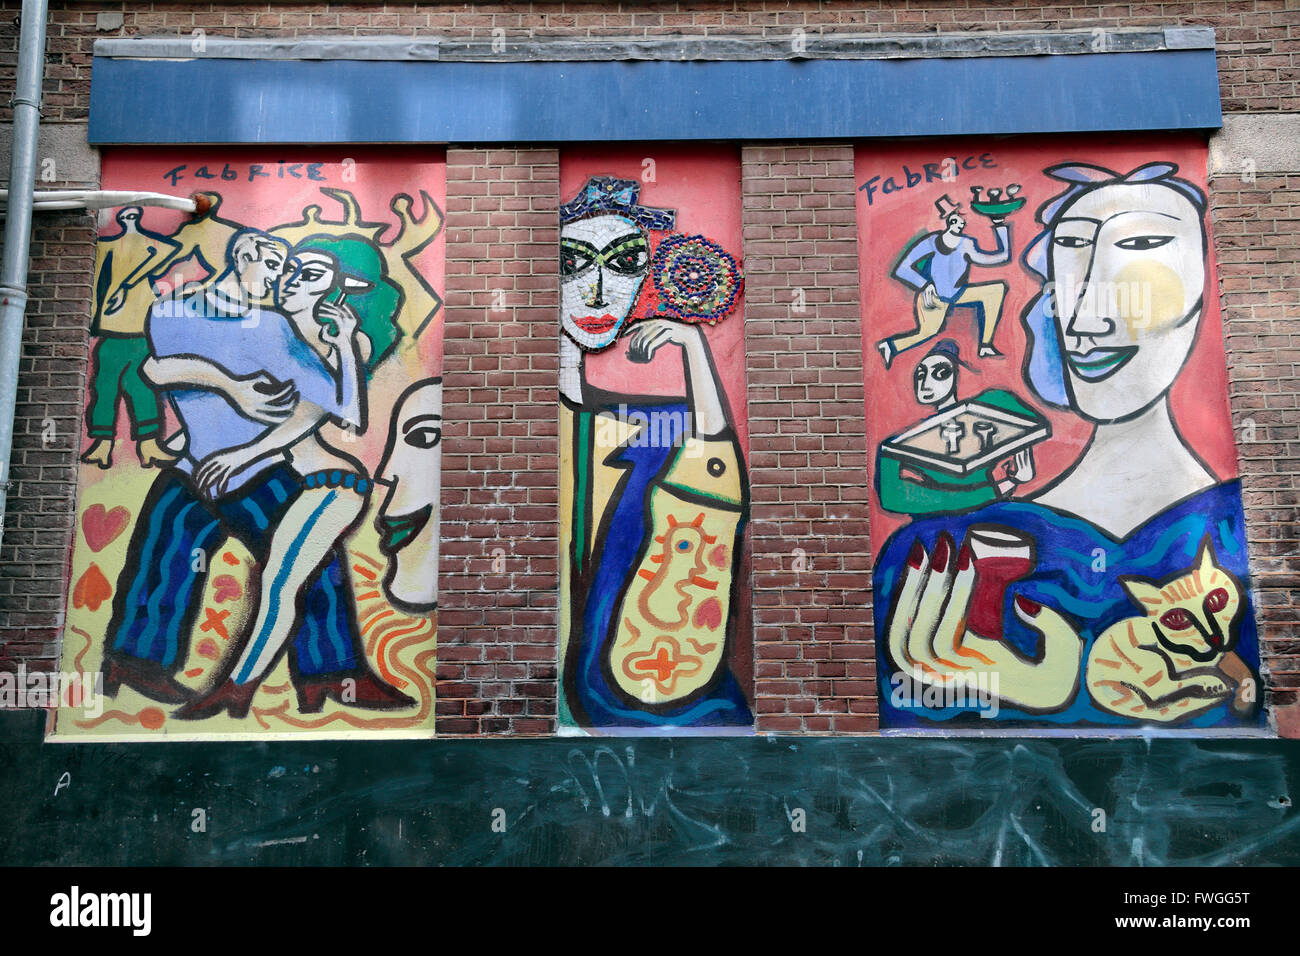 Street art by Fabrice Hünd (Fabrice Hund) on Begijnensteeg in Amsterdam, Netherlands. - Stock Image